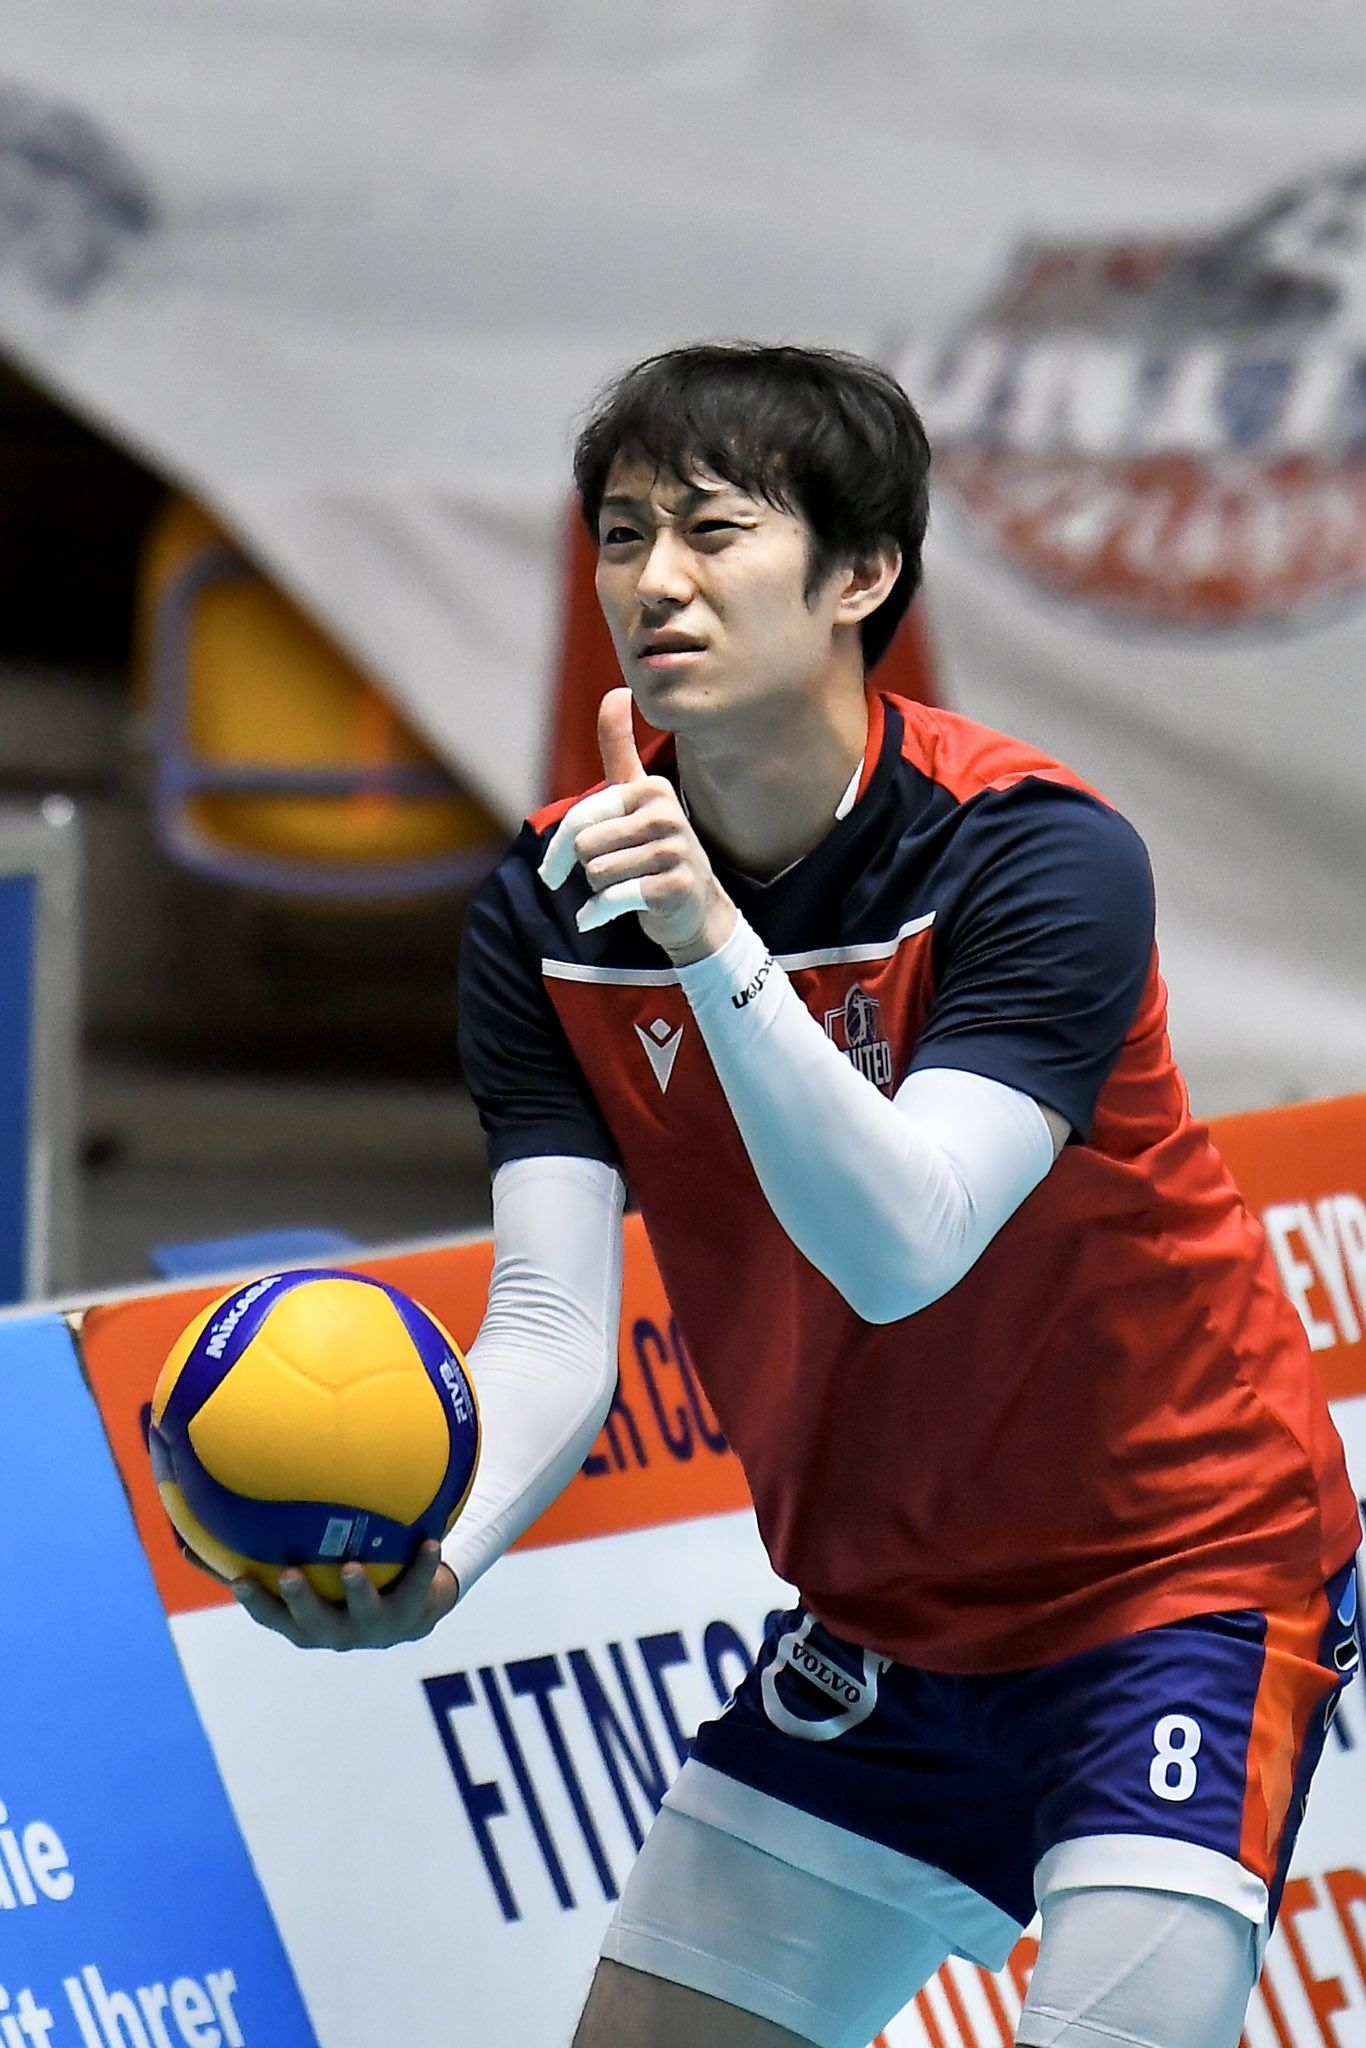 Twitter In 2020 Japan Volleyball Team Volleyball Clubs Volleyball Team